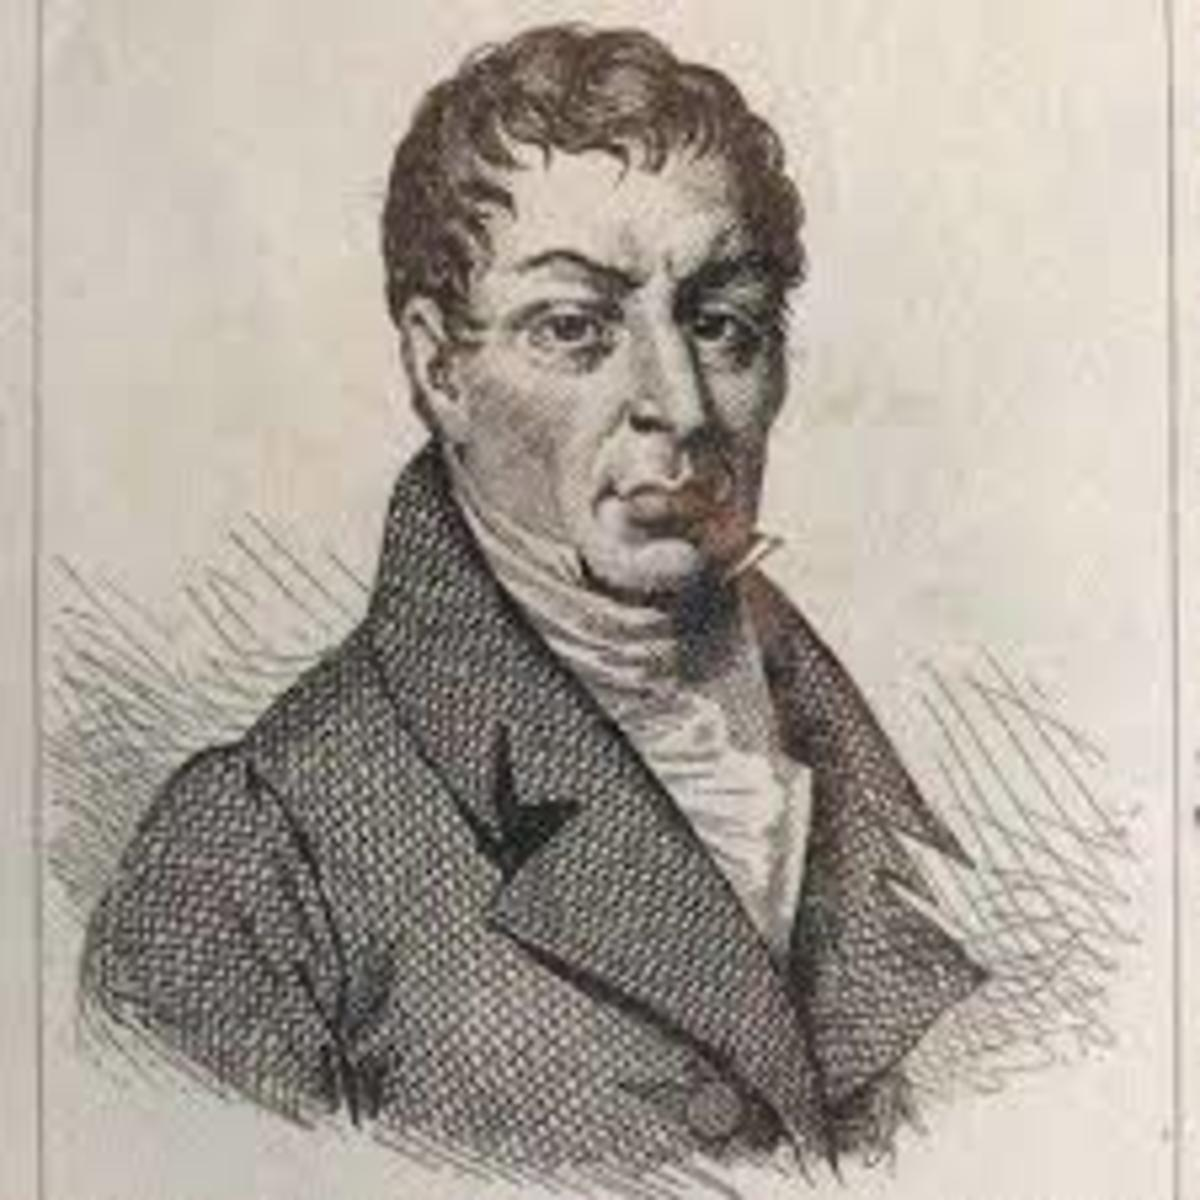 Constantin François de Chassebœuf, one of the early proponents of the Christ Myth theory.